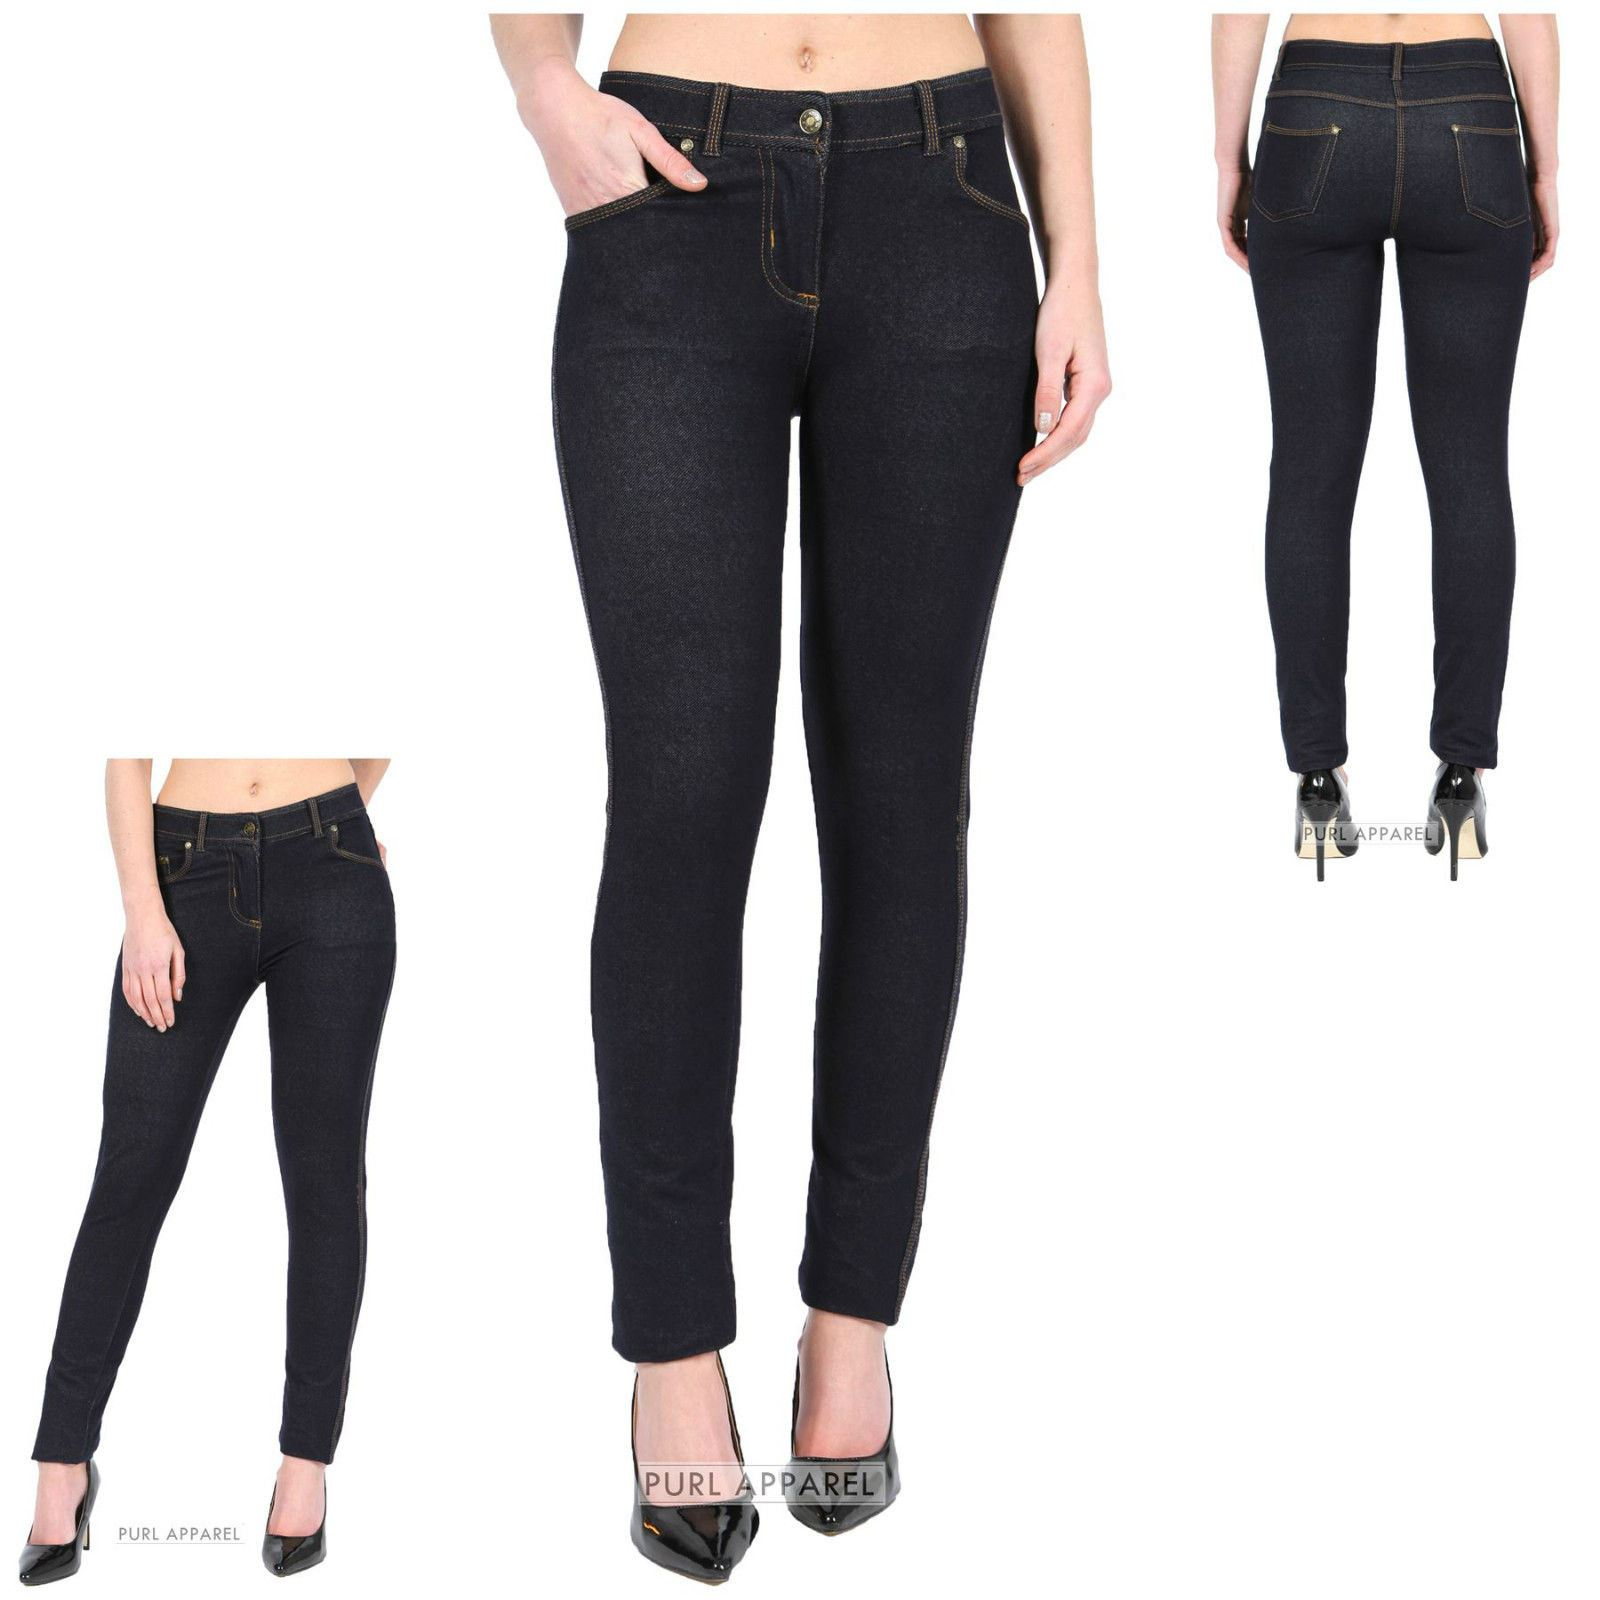 Discover women's pants with ASOS. Shop for the latest chinos, leggings and pants with ASOS. your browser is not supported. ASOS DESIGN high waist pants in skinny fit. $ ASOS DESIGN pull on tapered black pants in jersey crepe. $ ASOS DESIGN ultimate ankle grazer pants. $